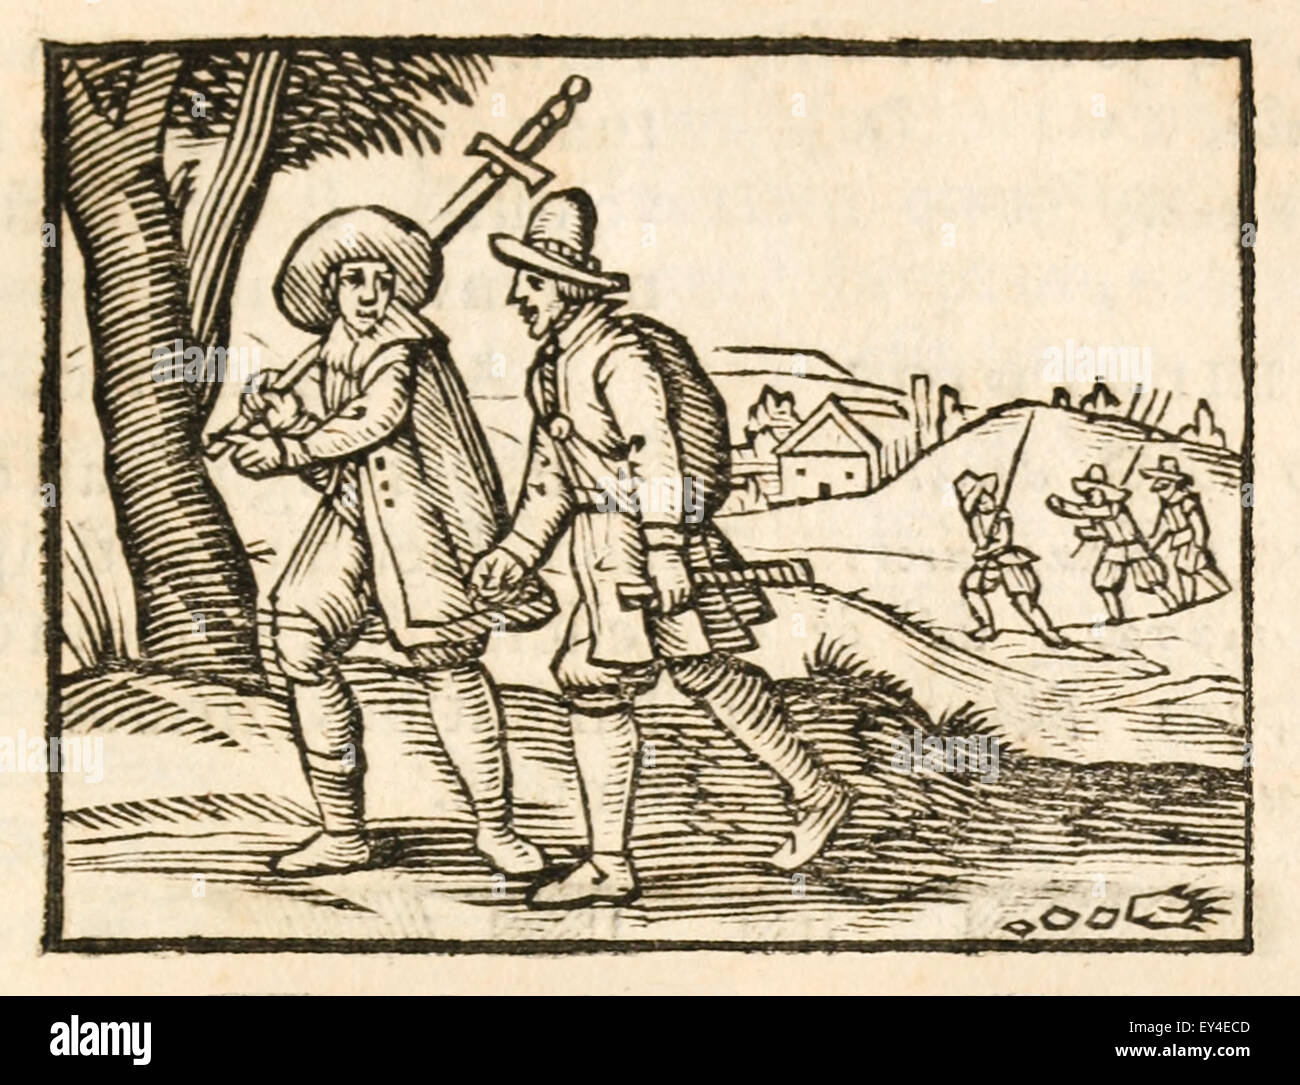 'The Travellers' fable by Aesop (circa 600BC). 17th century woodcut print illustrating Aesop's Fables. - Stock Image